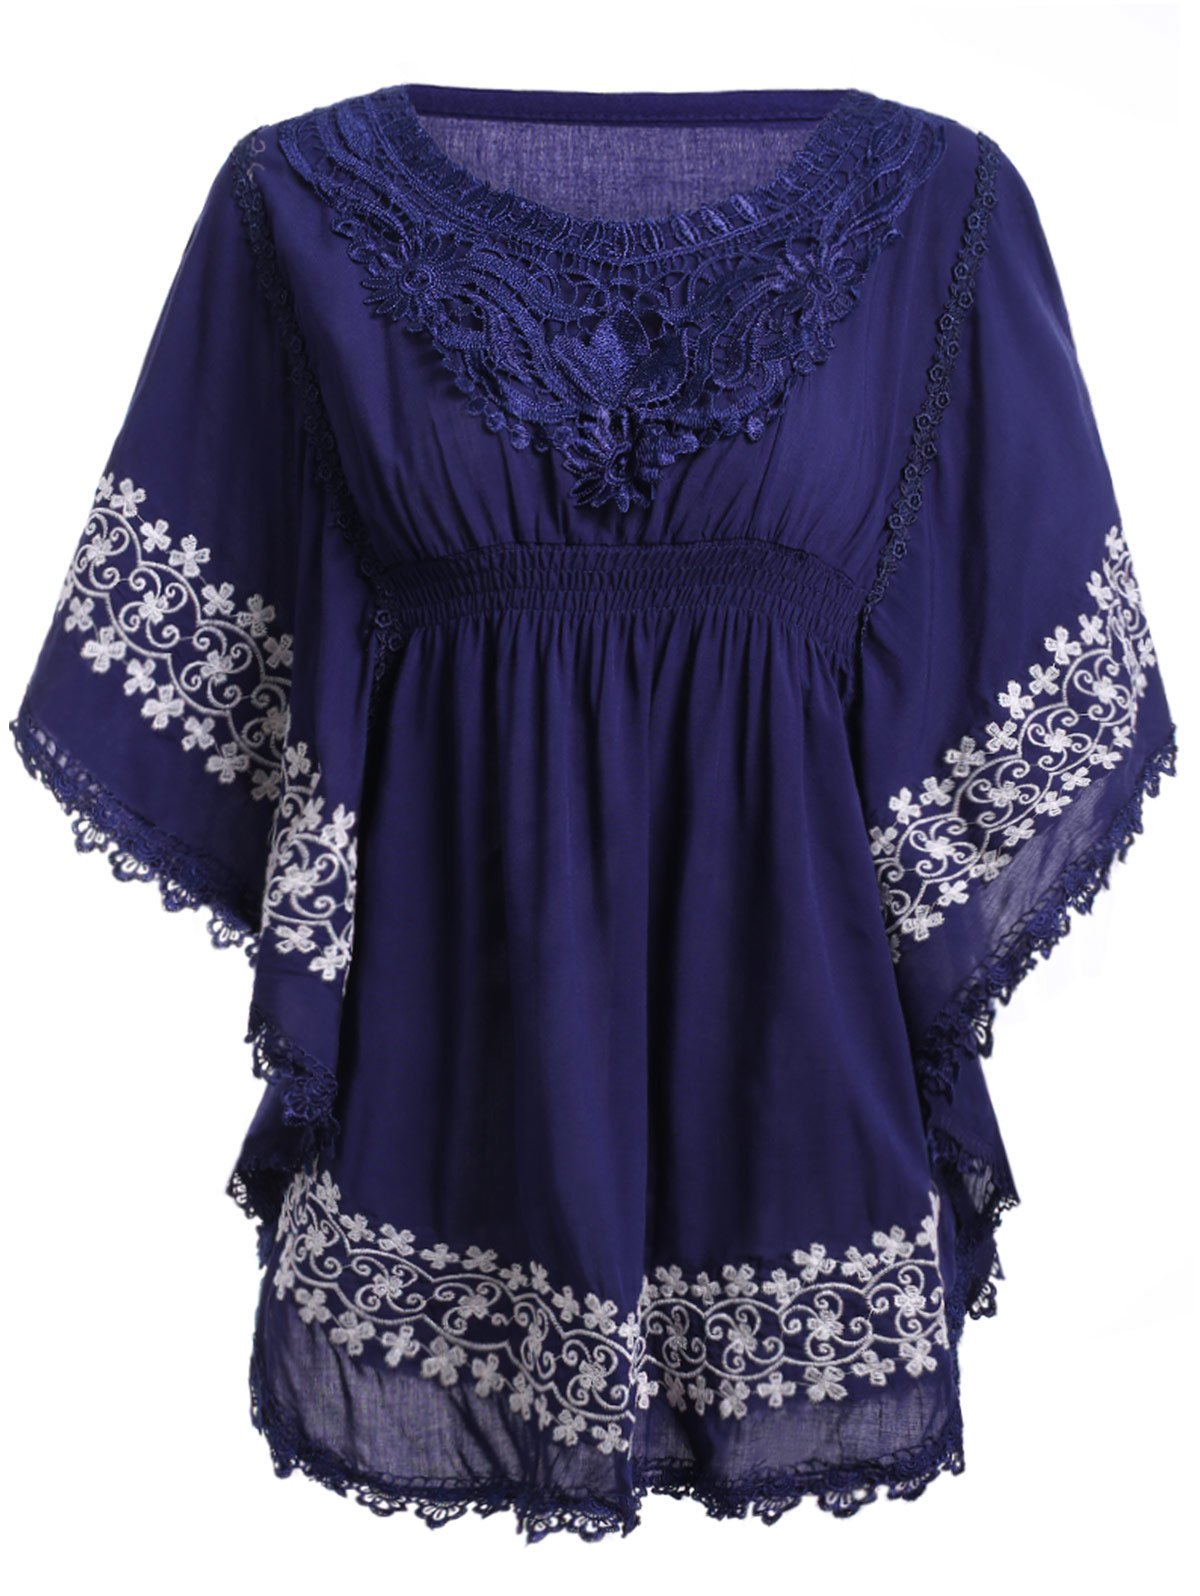 Ethnic Style Women's Round Neck Embroidery Lace Batwing Sleeve Blouse - PURPLISH BLUE ONE SIZE(FIT SIZE XS TO M)